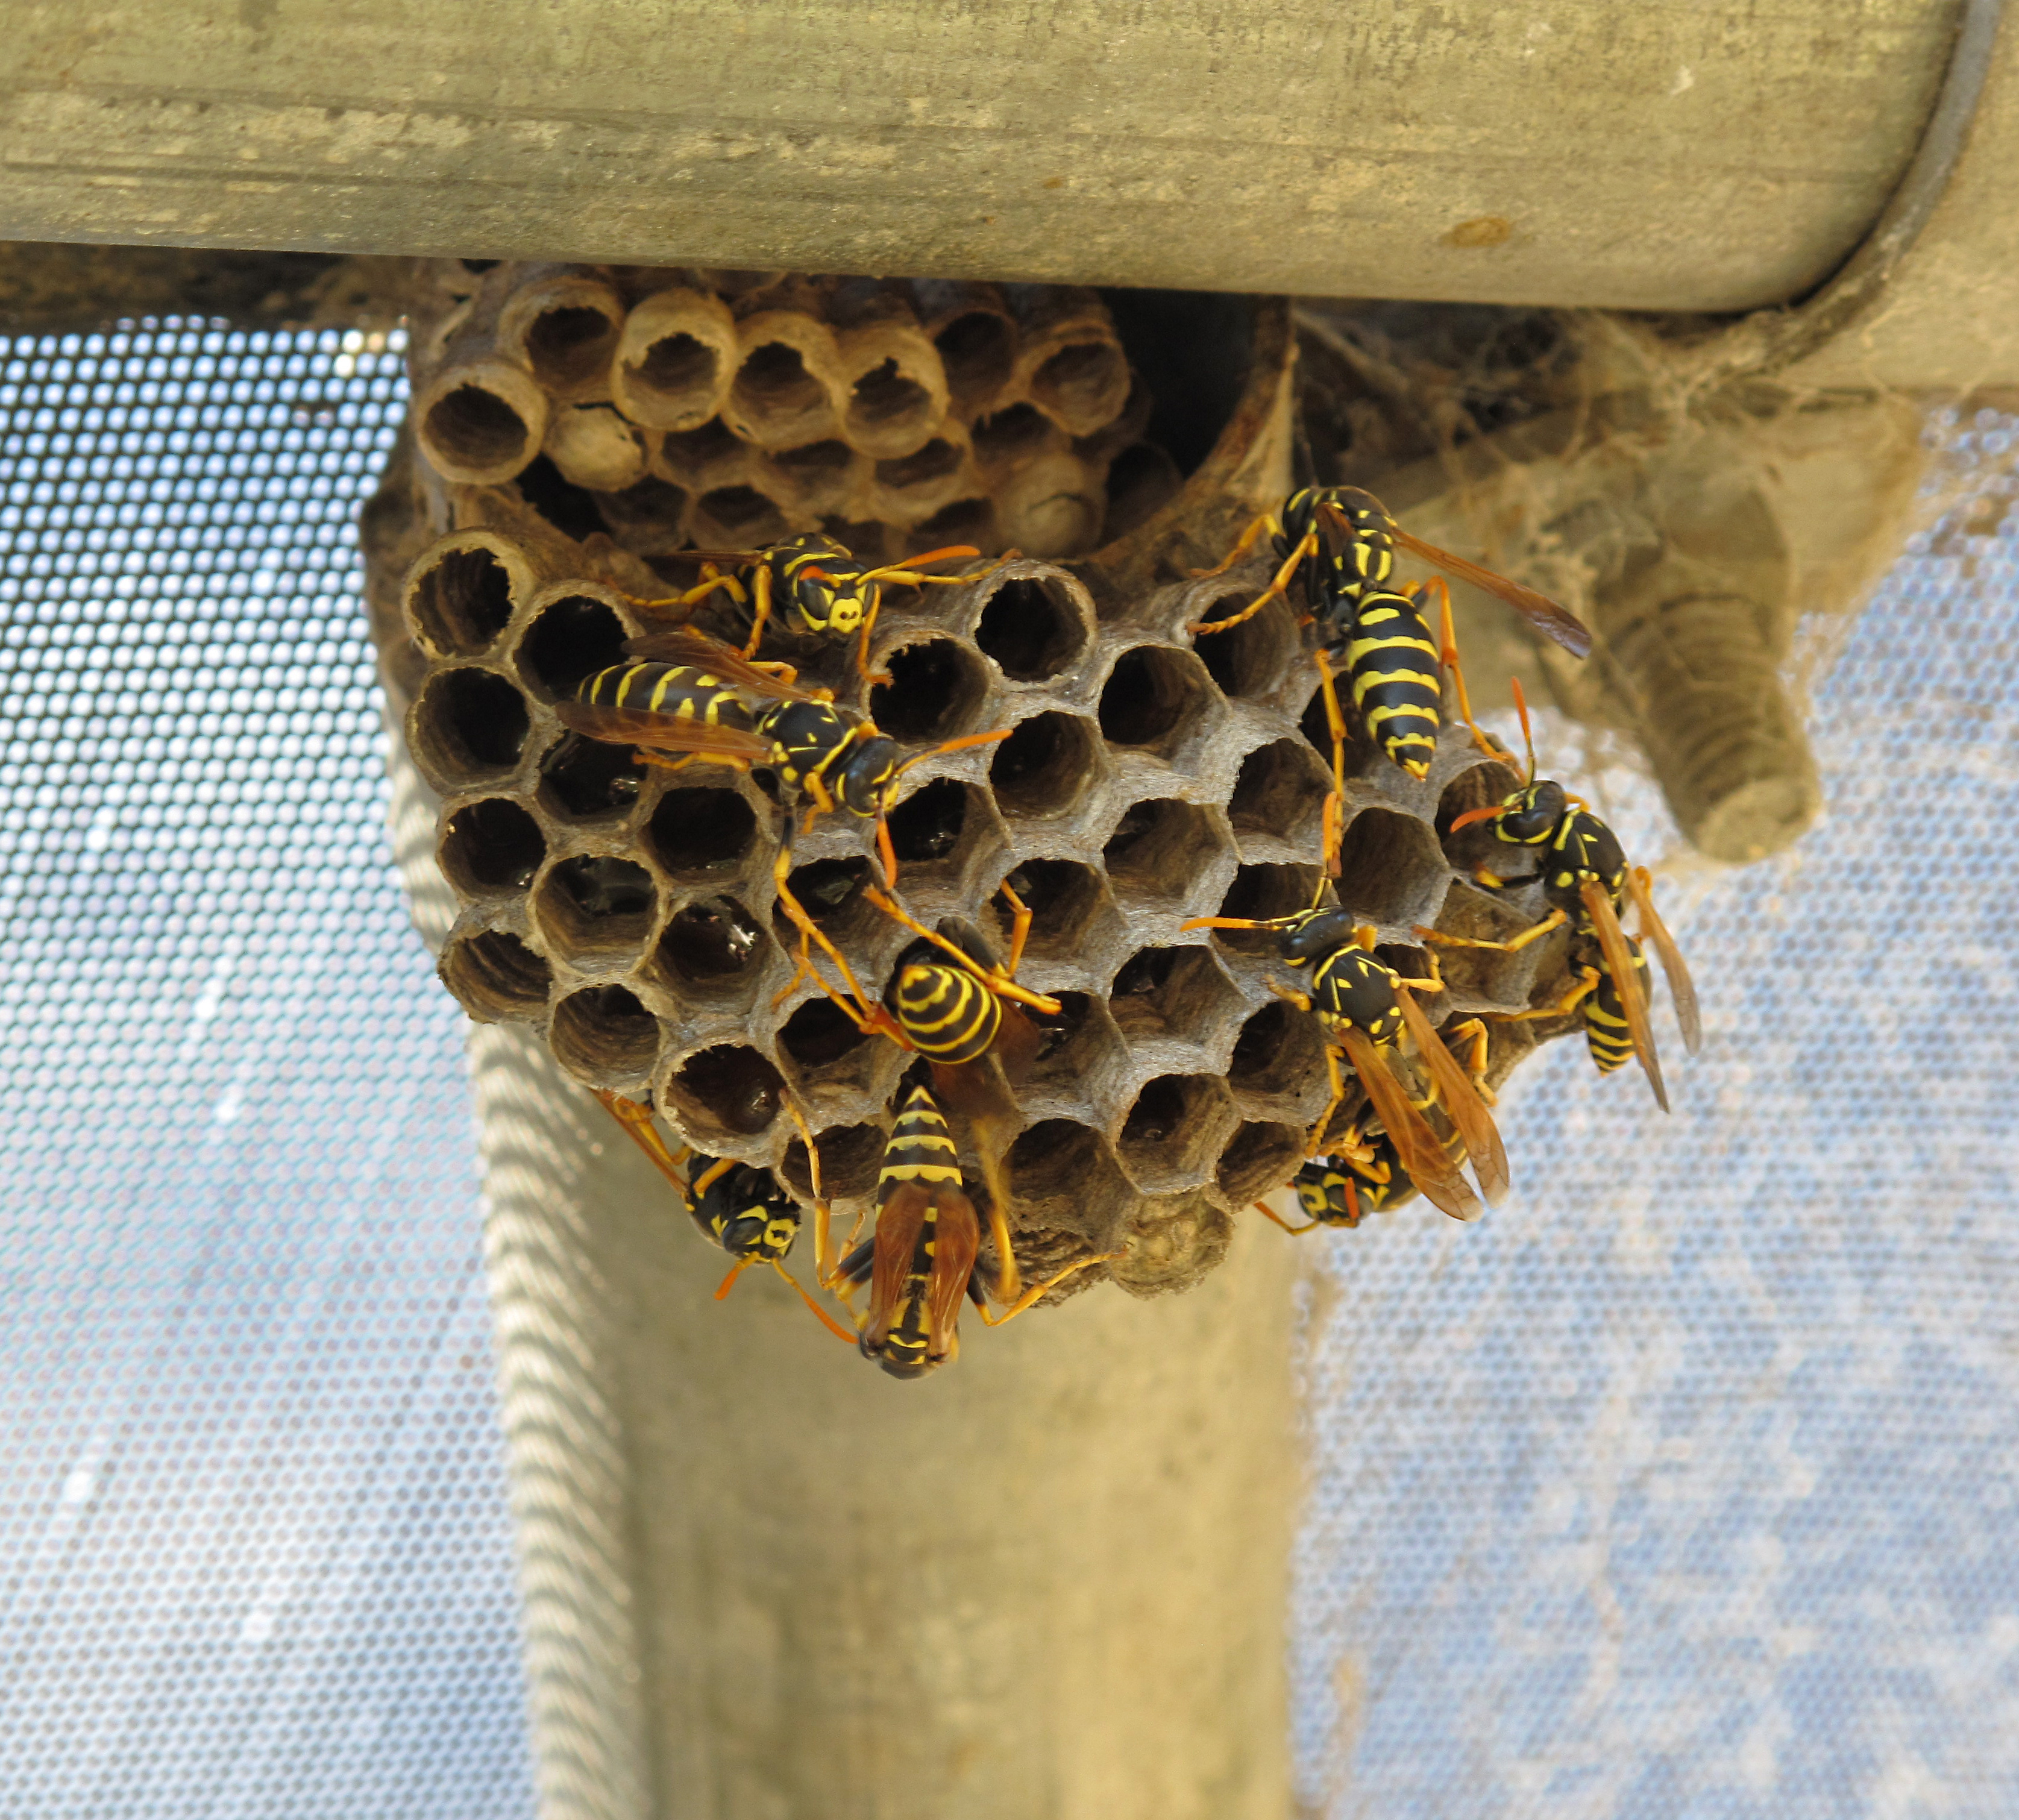 paper wasps nests Paper wasps should not be confused with yellowjackets paper wasp nests can be dislodged from eaves using sprays of high pressure water from a good distance.